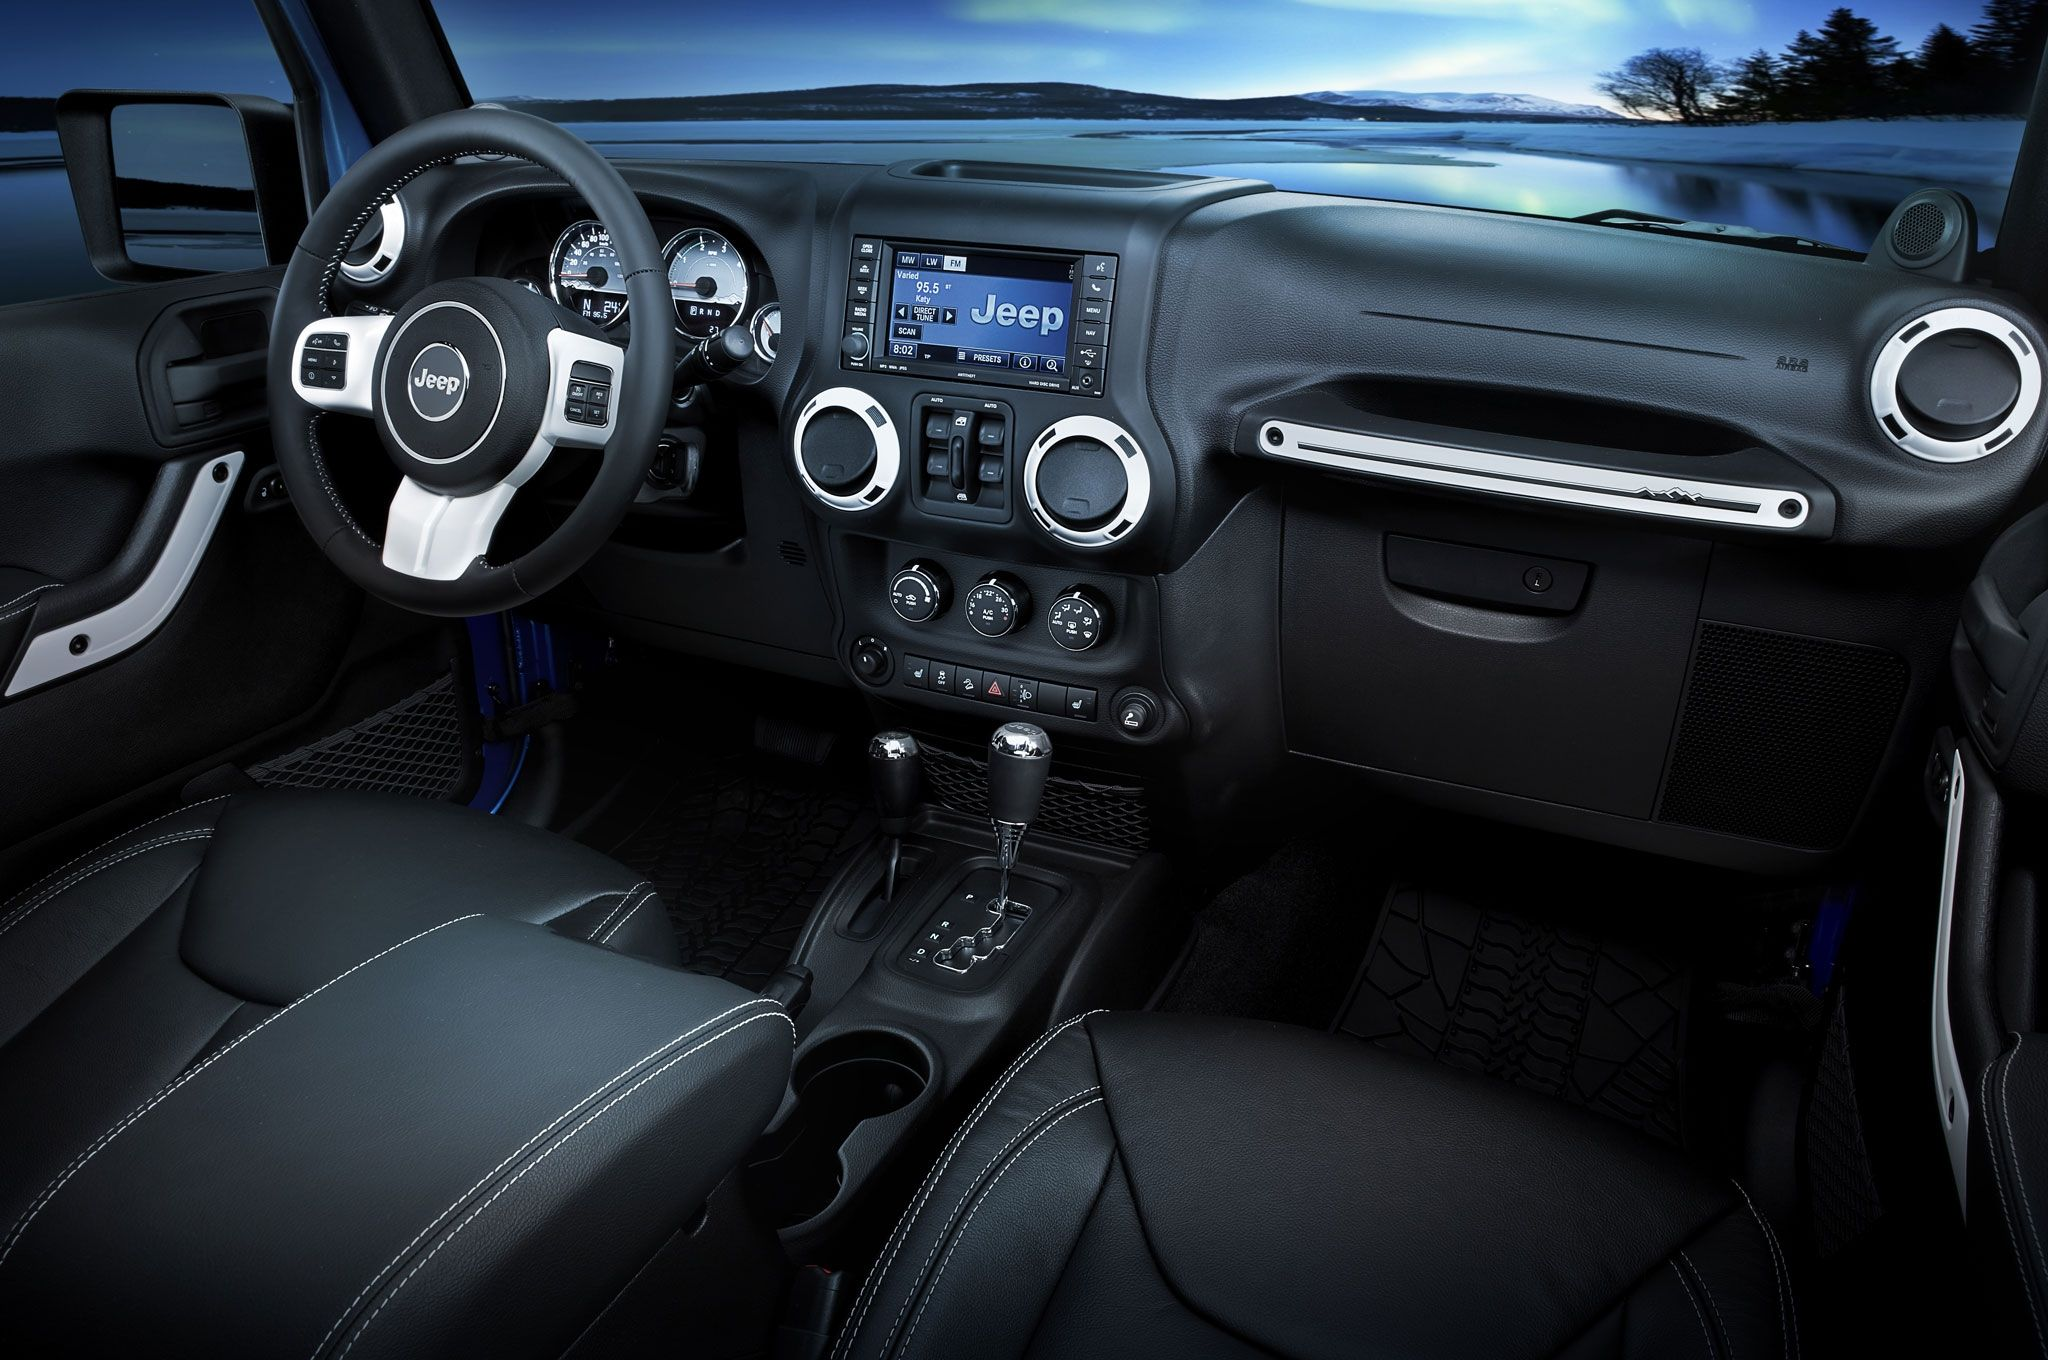 2015 Jeep Wrangler Unlimited Interior Image Vehicle Jeep Pinterest 2015 Jeep Wrangler